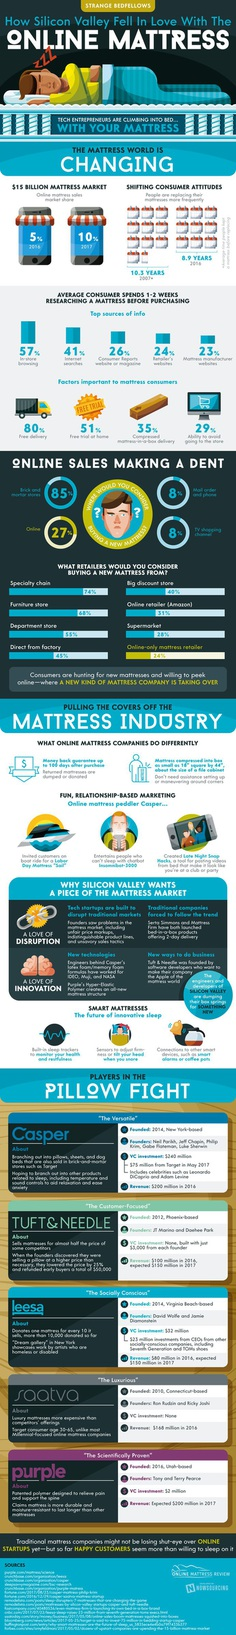 Strange Bedfellows: How Silicon Valley Fell In Love With The Online Mattress - Online Mattress Review